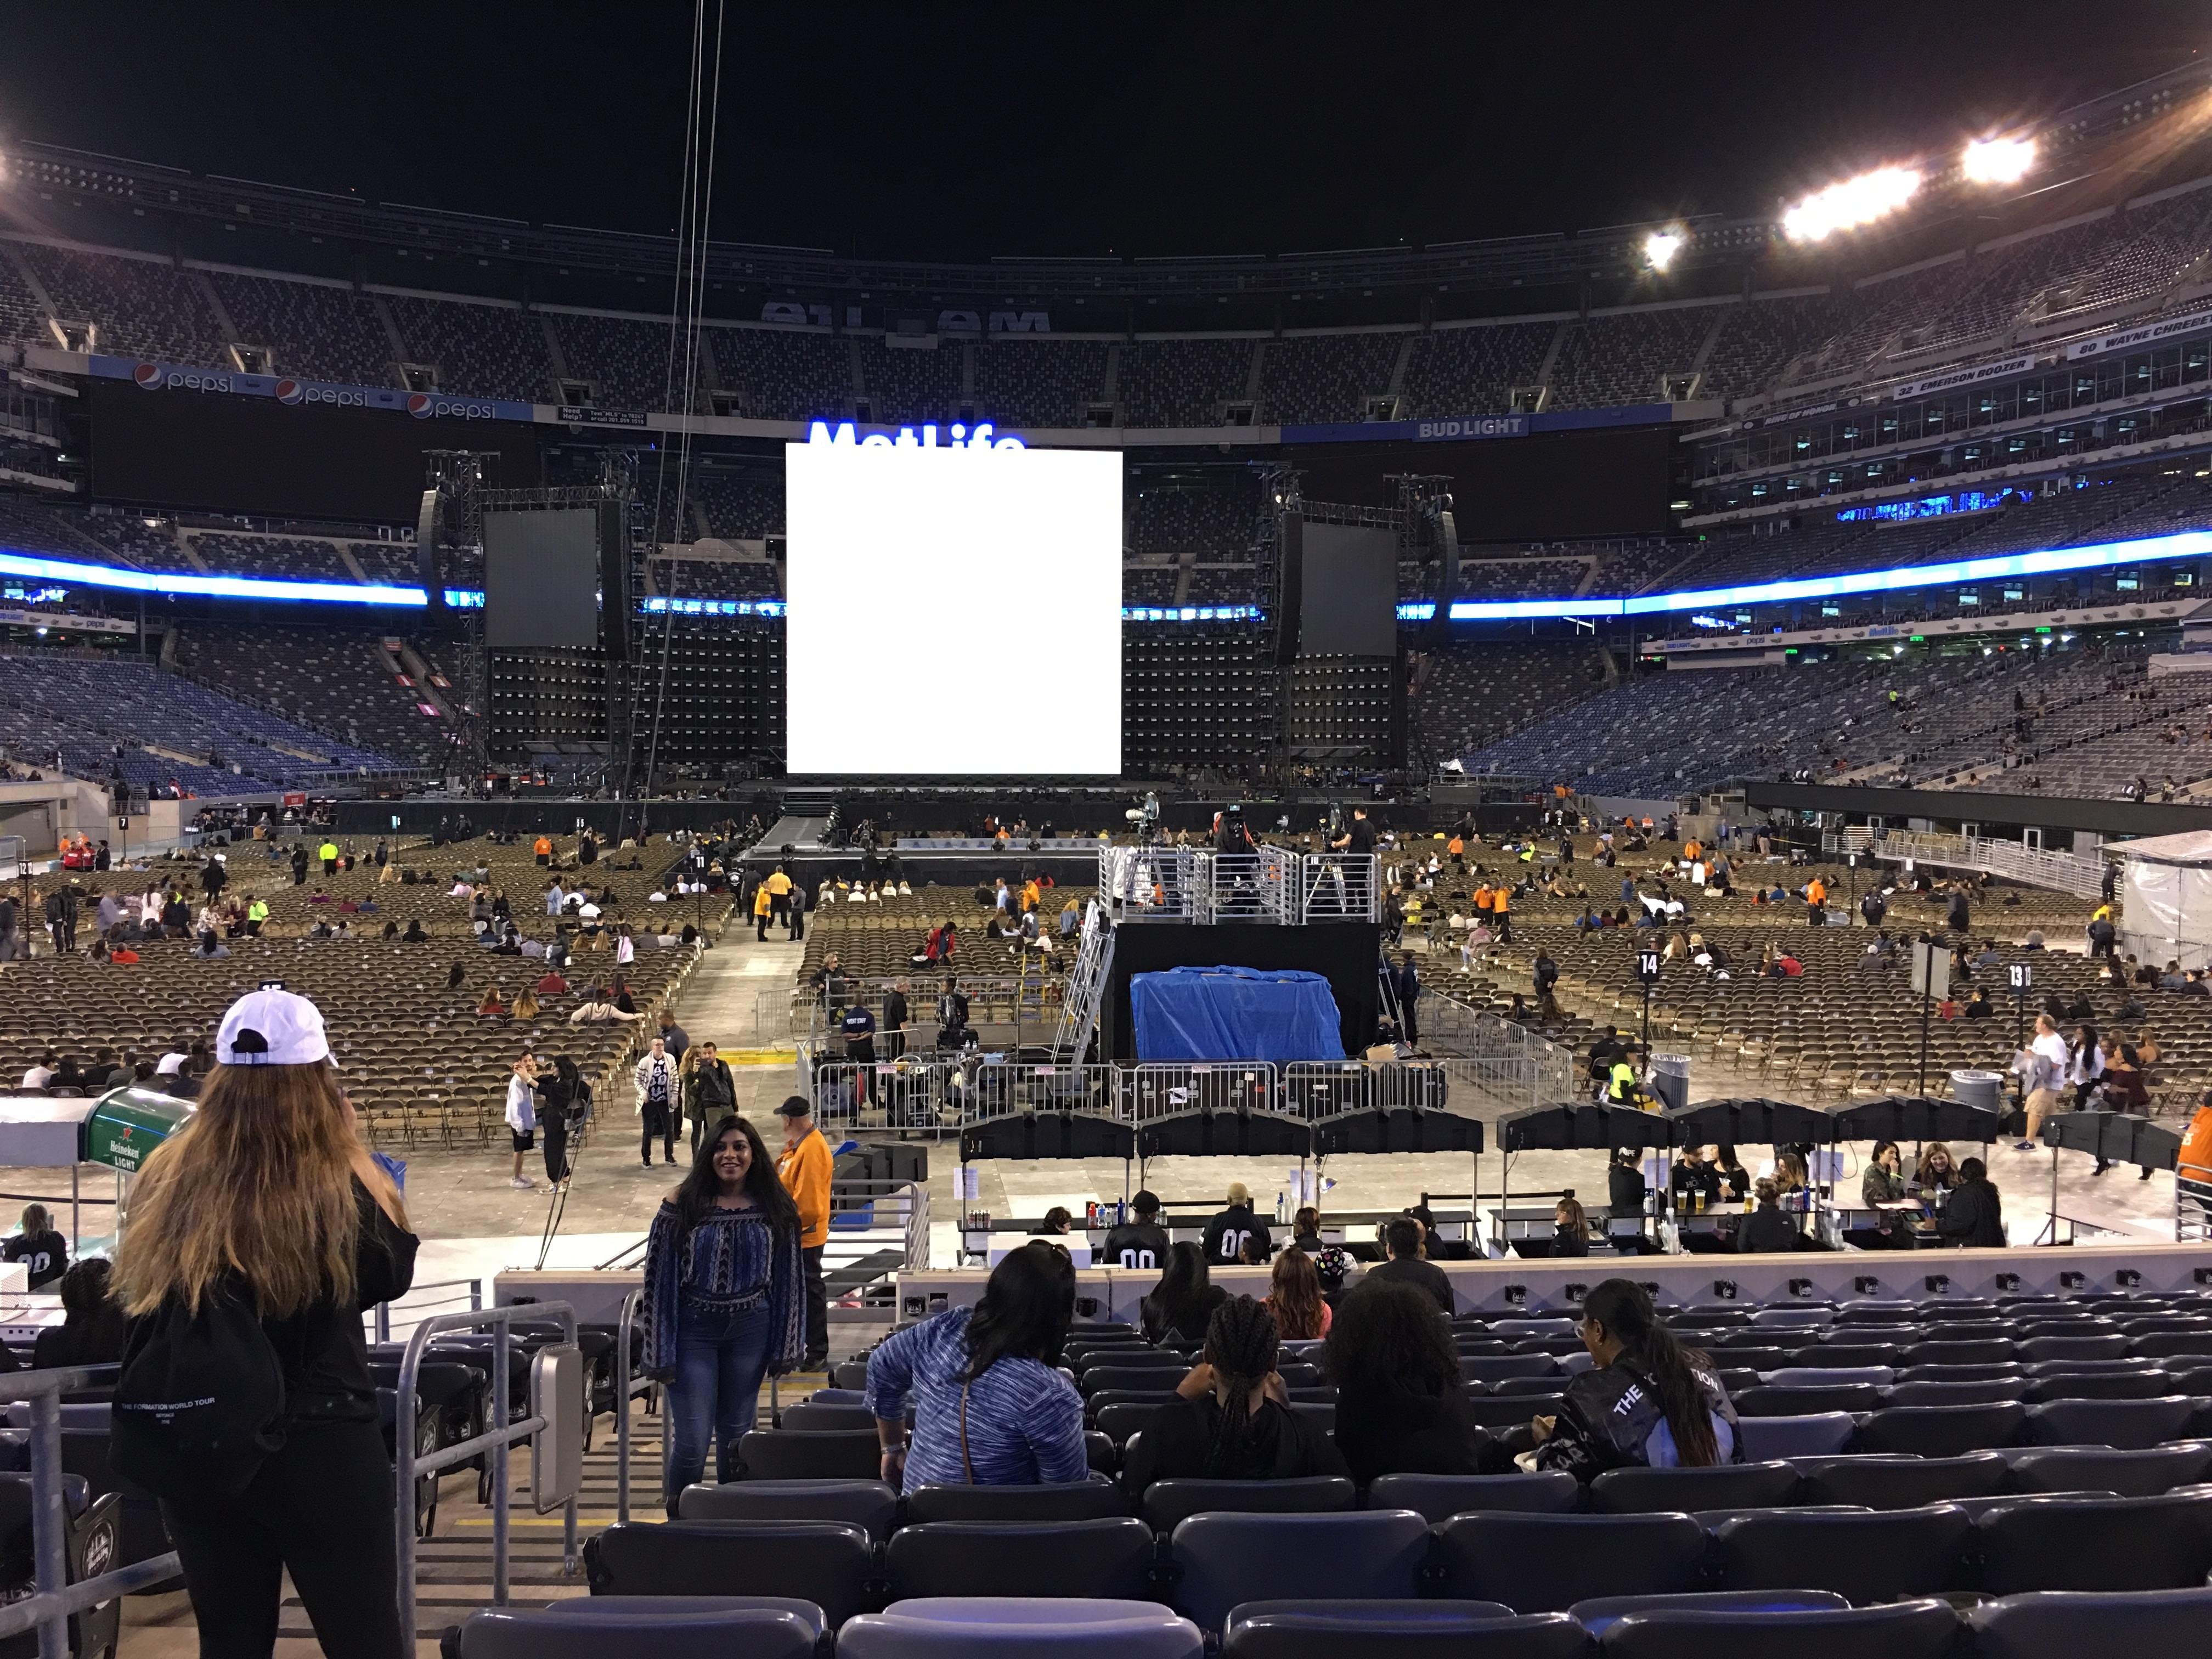 MetLife Stadium Section 126 Row 15 Seat 25,26